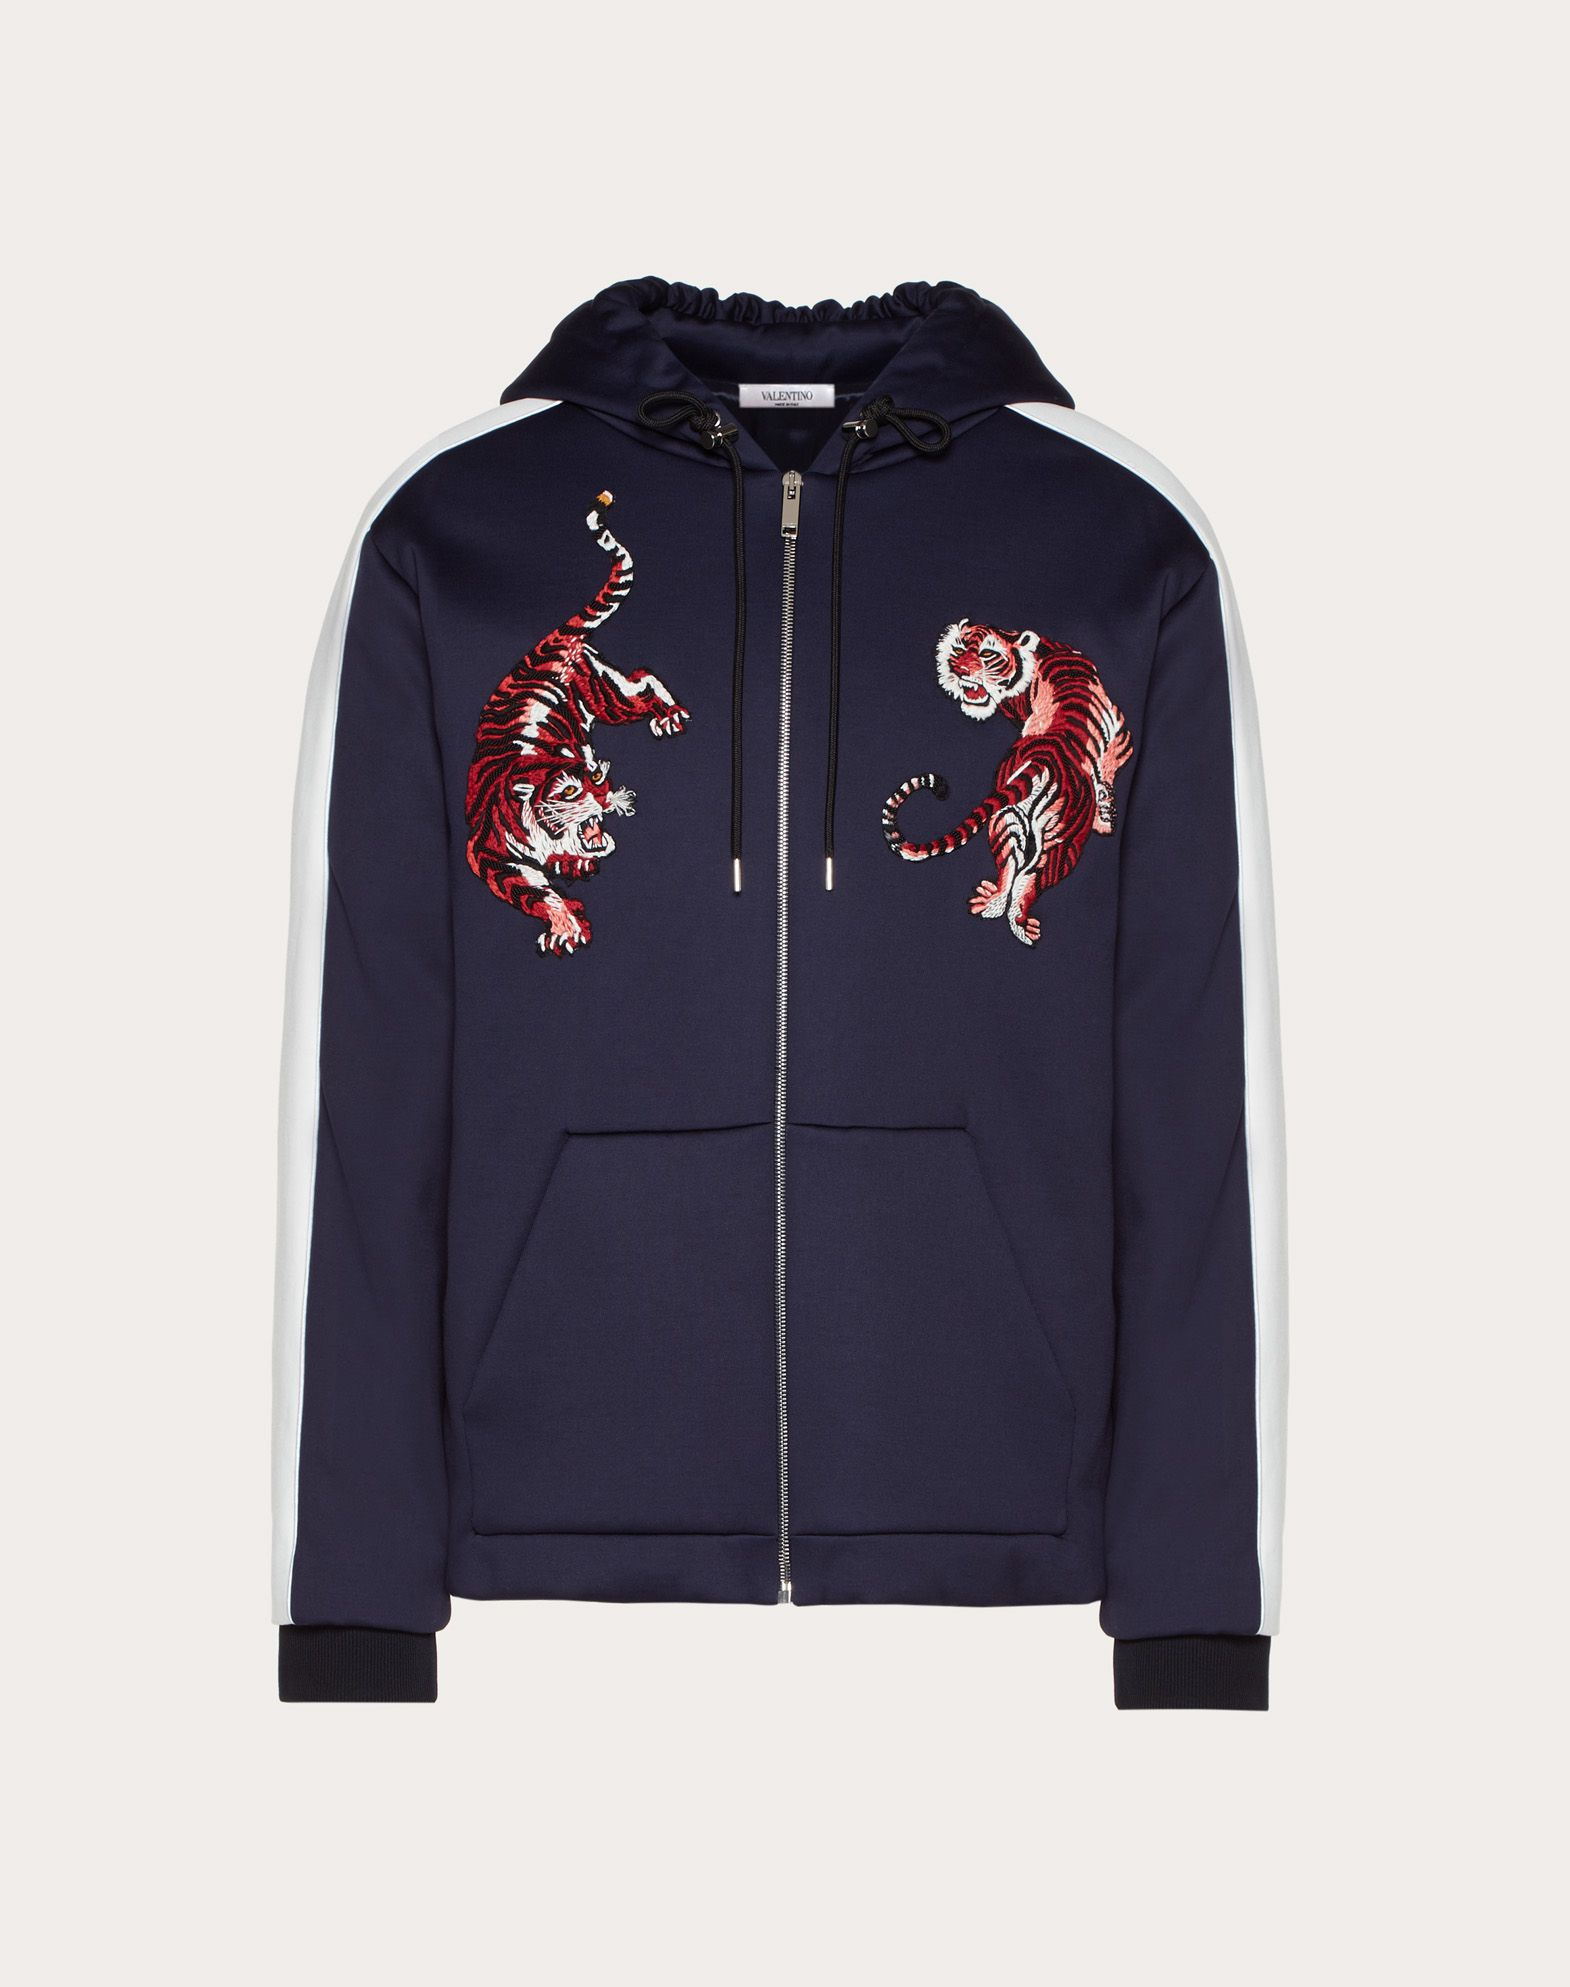 HOODED SWEATSHIRT WITH ZIPPER AND GO TIGER PATCH